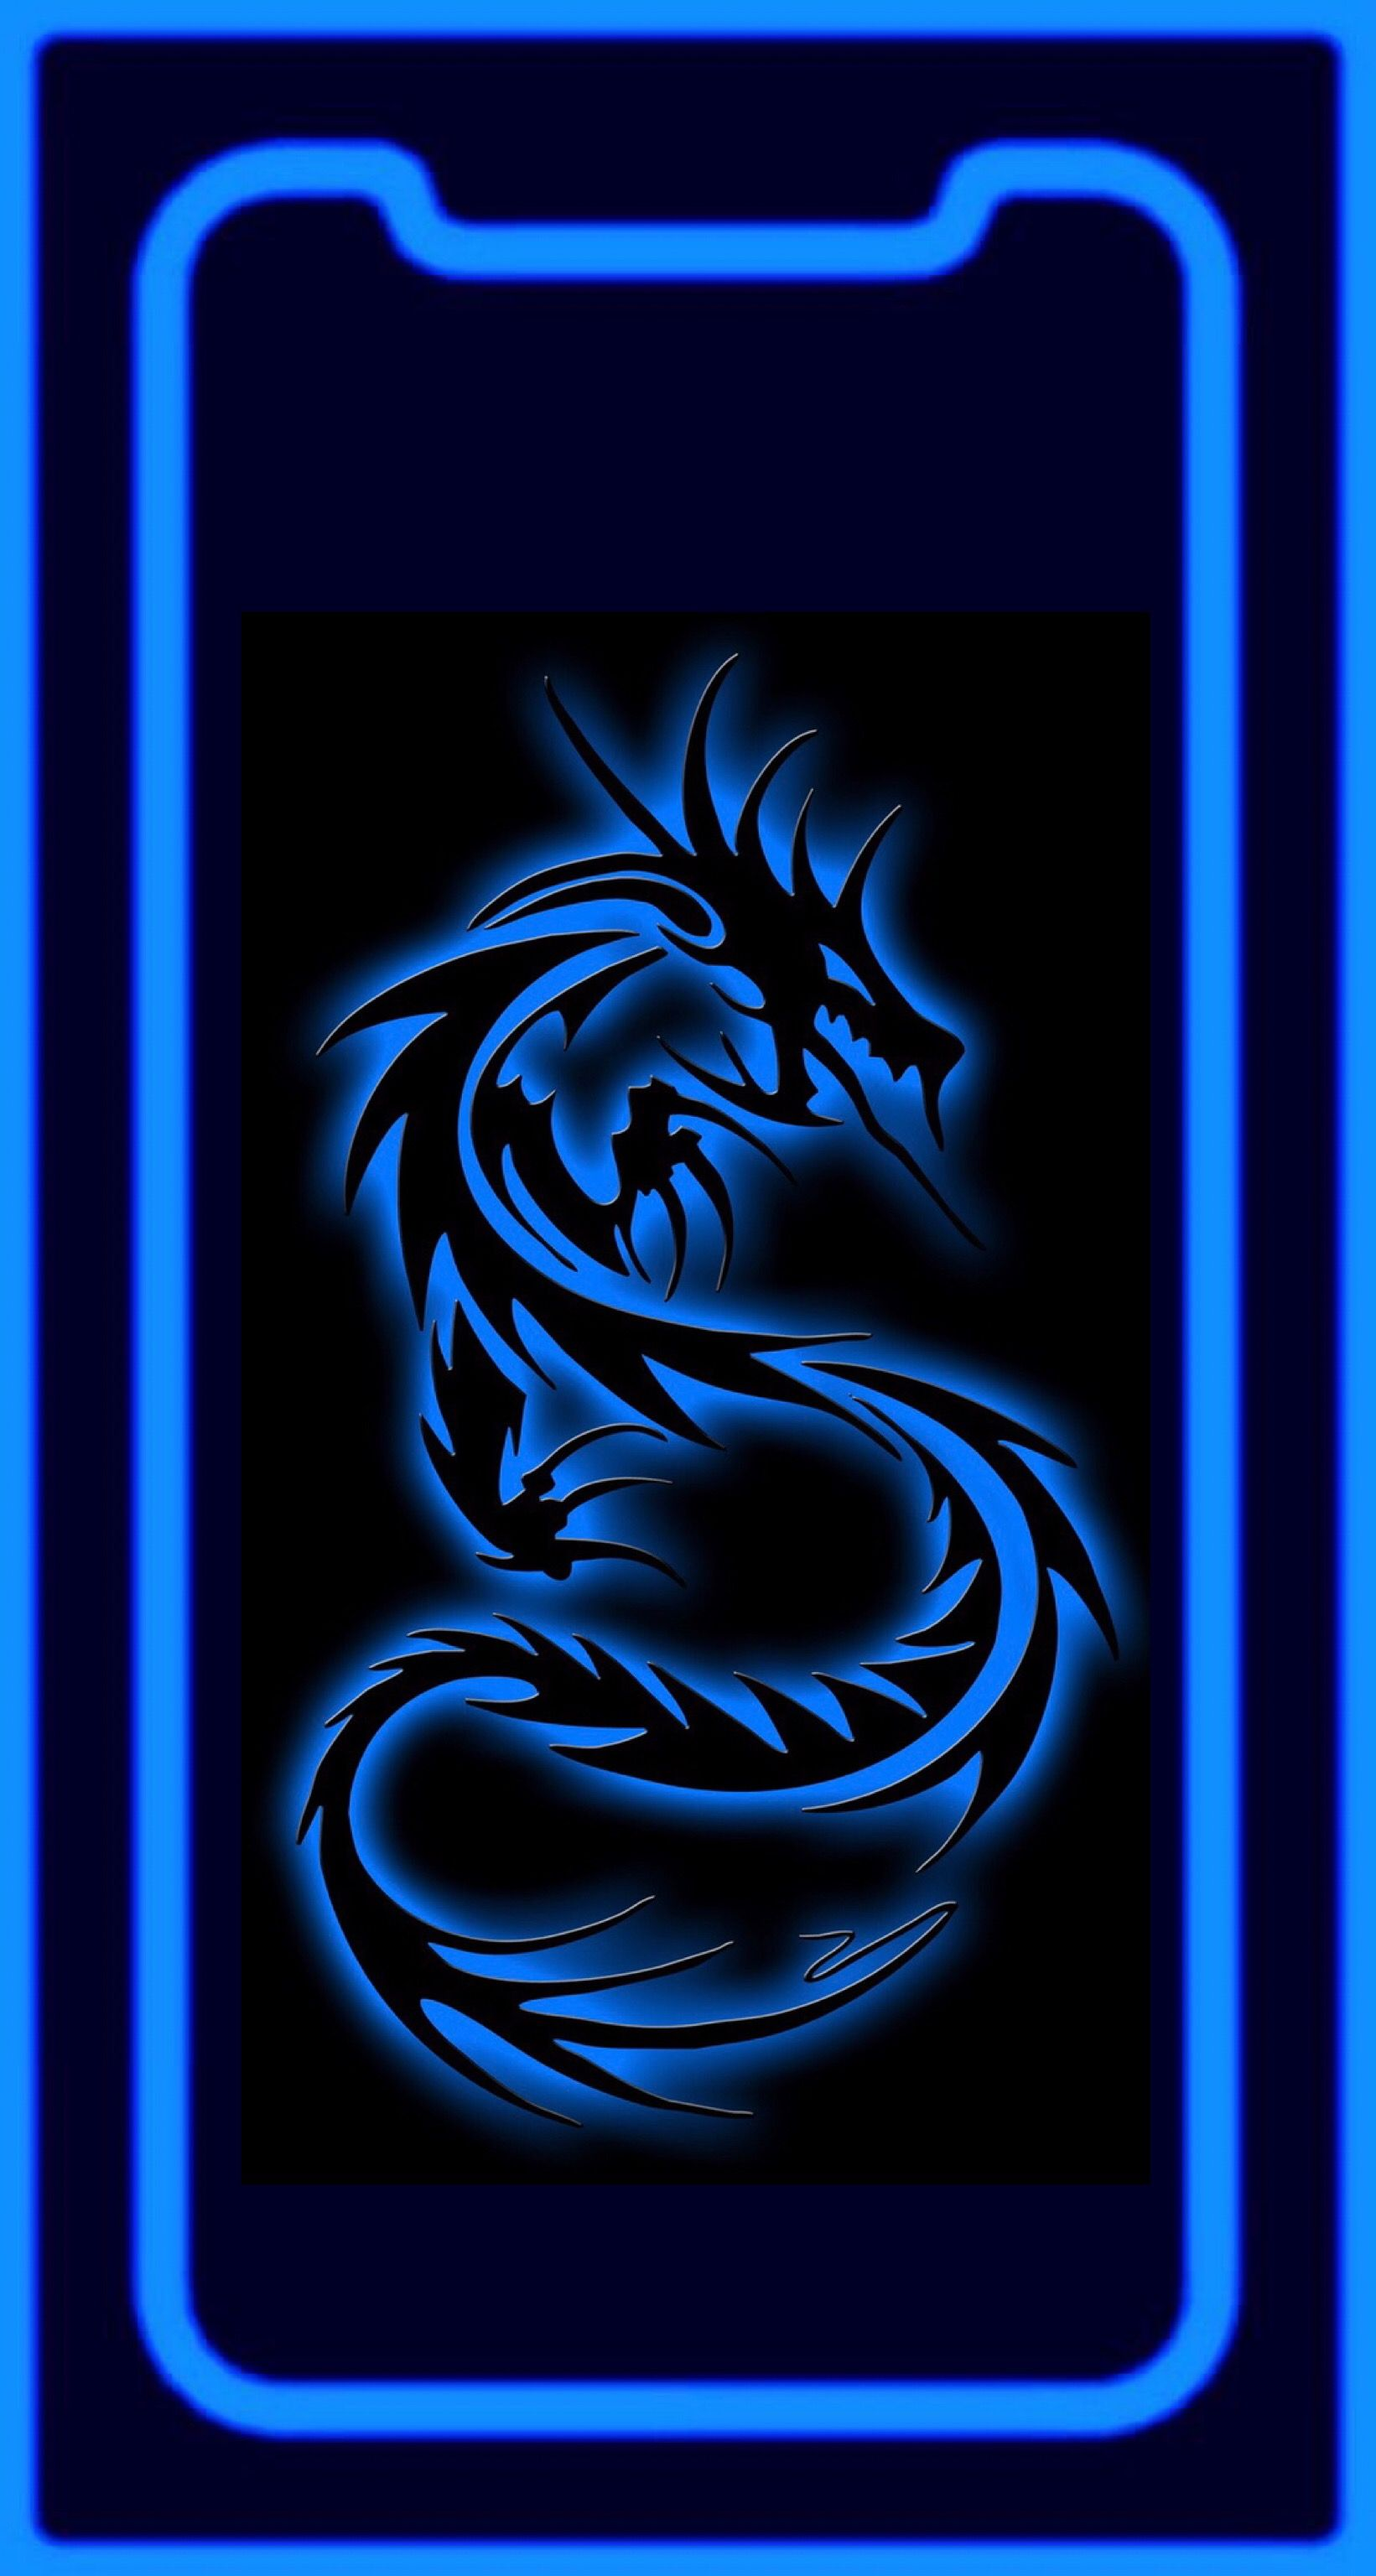 Wallpaper iPhone X - Blue Dragon | IPhone X Wallpaper by Ben™️ in